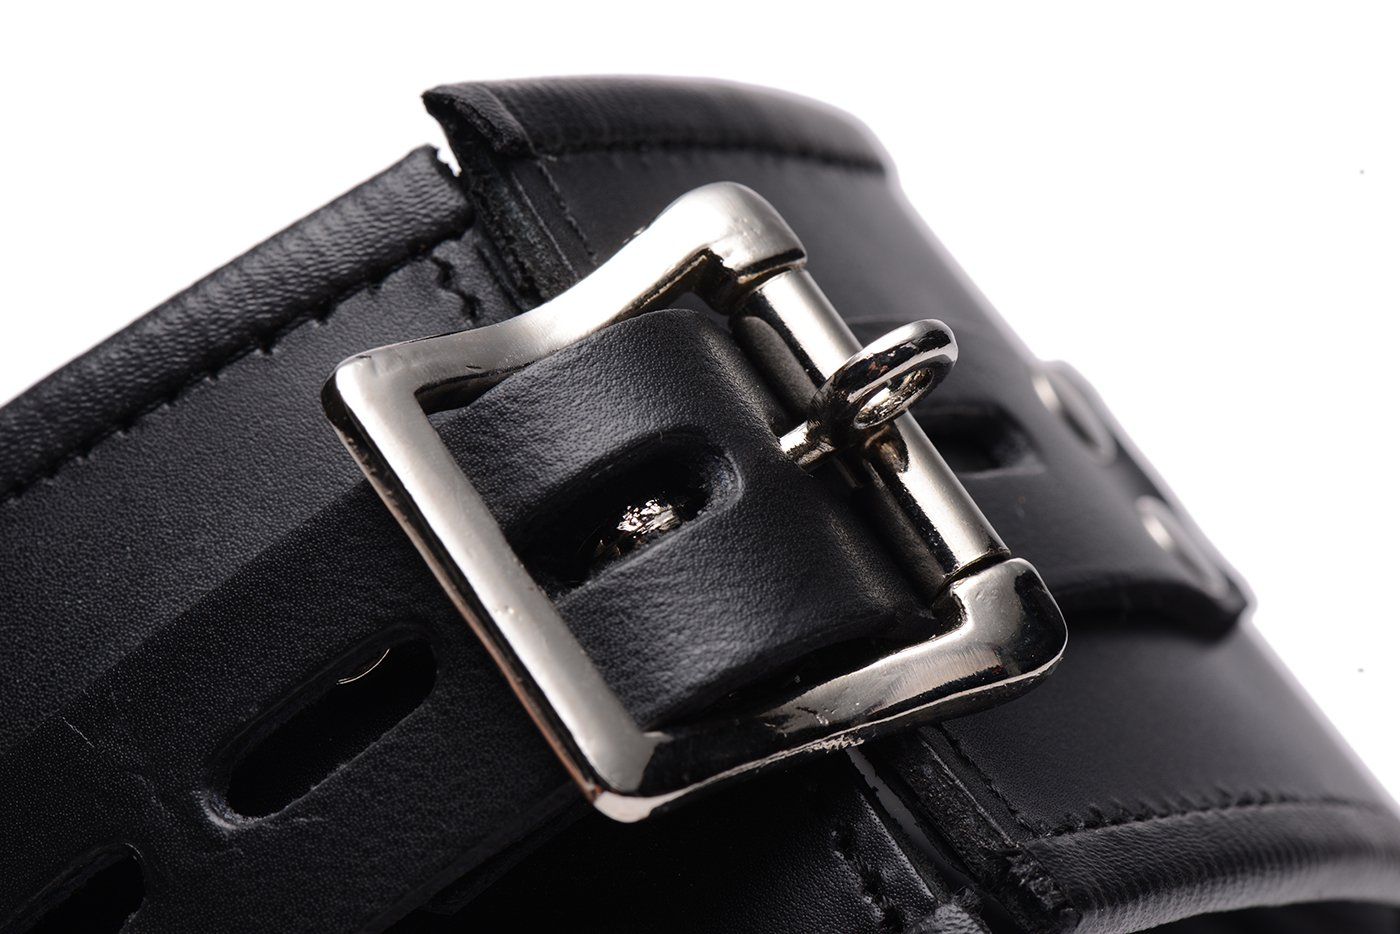 Strict Leather Padded Leather Locking Posture Collar by Strict Leather